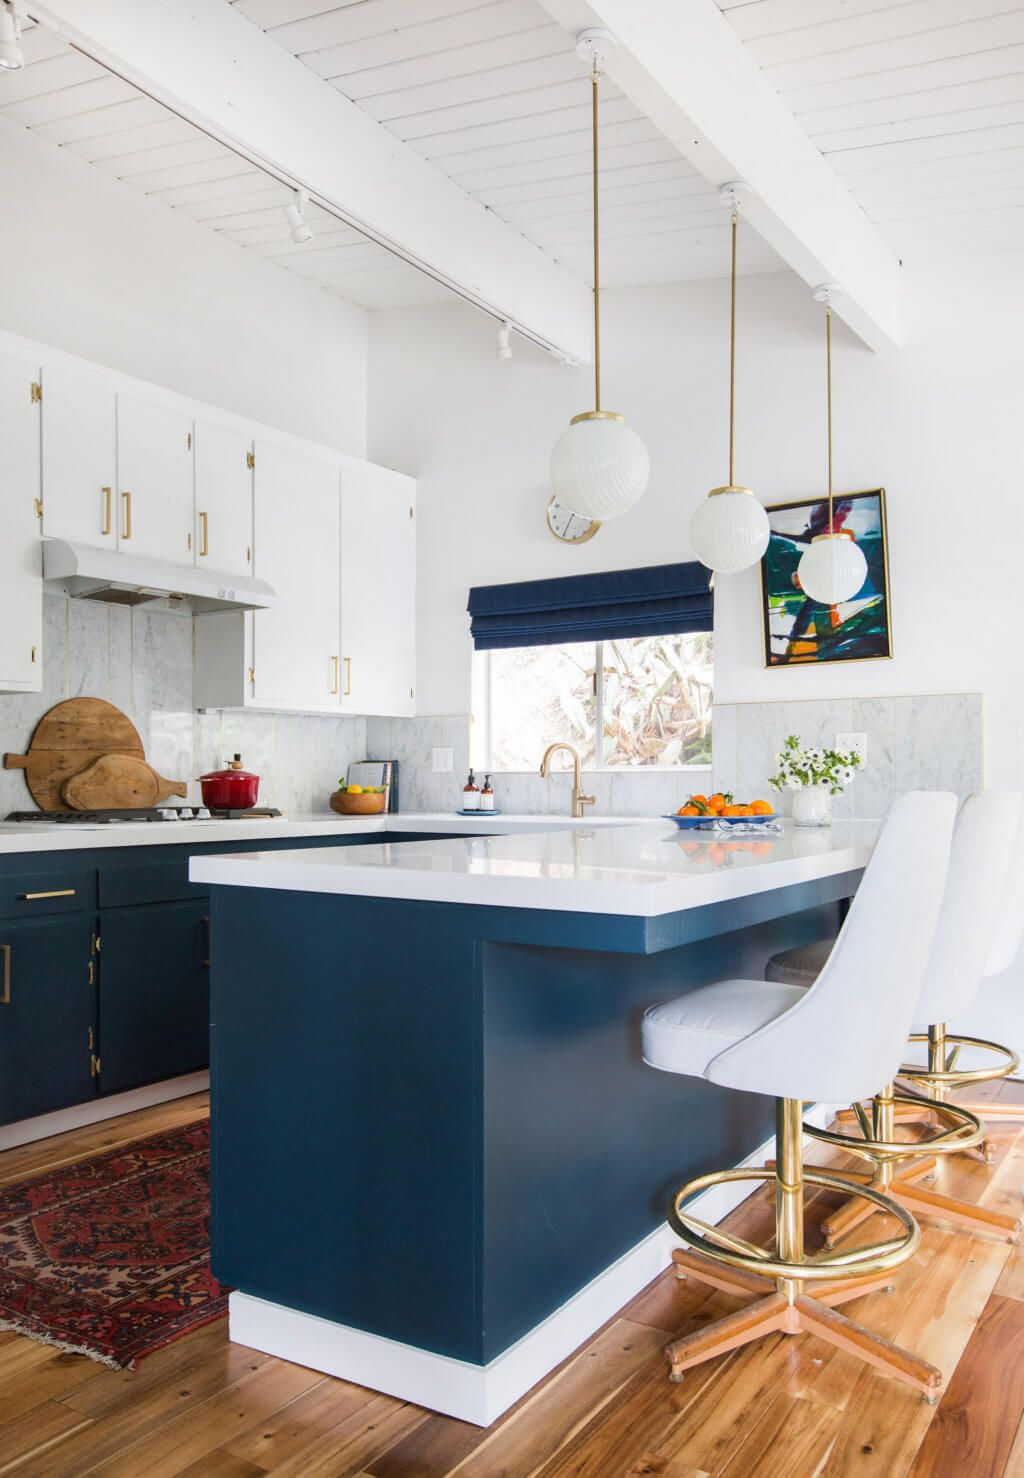 Our First Home: A Look Back And Full House Tour | Kitchens regarding Schutt 4-Light Kitchen Island Pendants (Image 15 of 30)